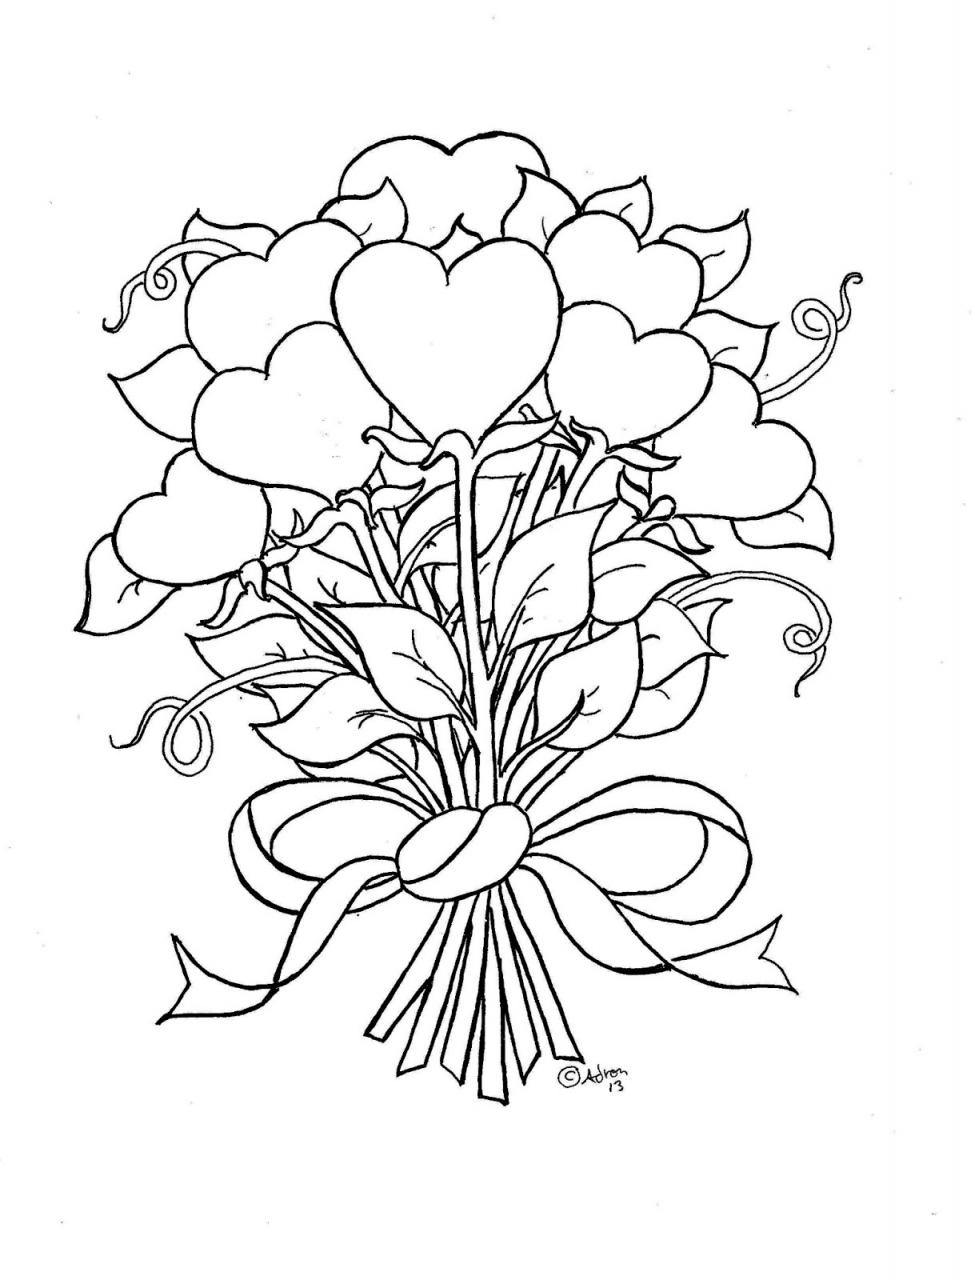 Bleeding Heart Flower Drawing at GetDrawings.com | Free for personal ...